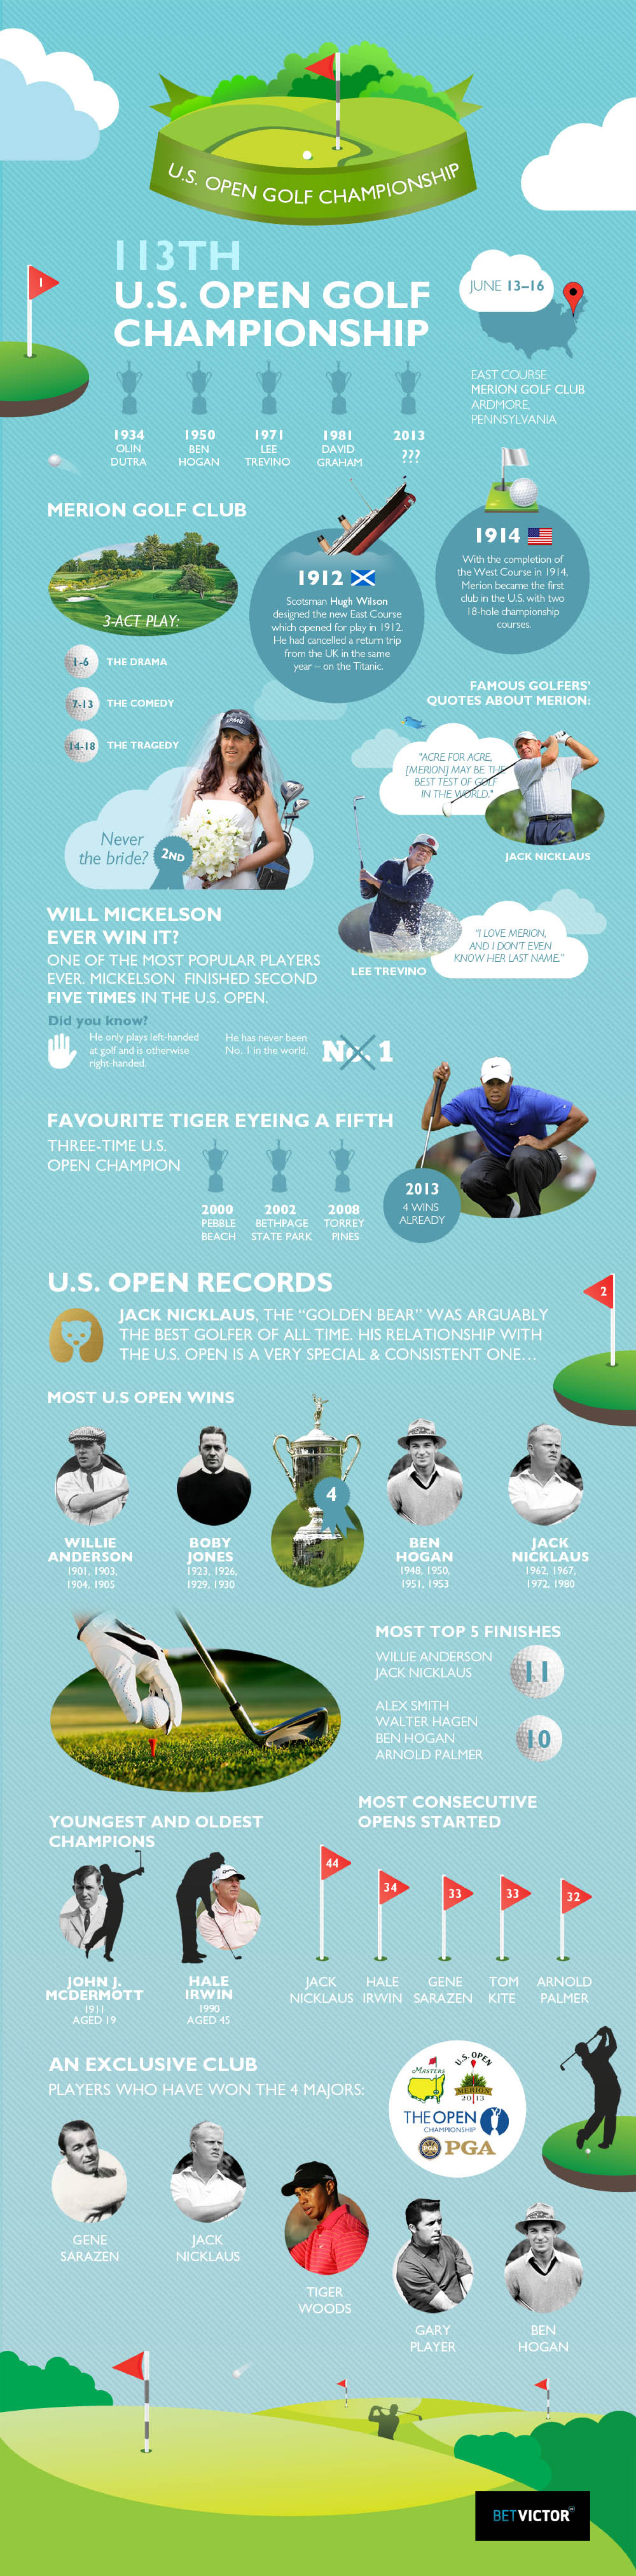 [Infographic] US Open Golf Championship Infographic